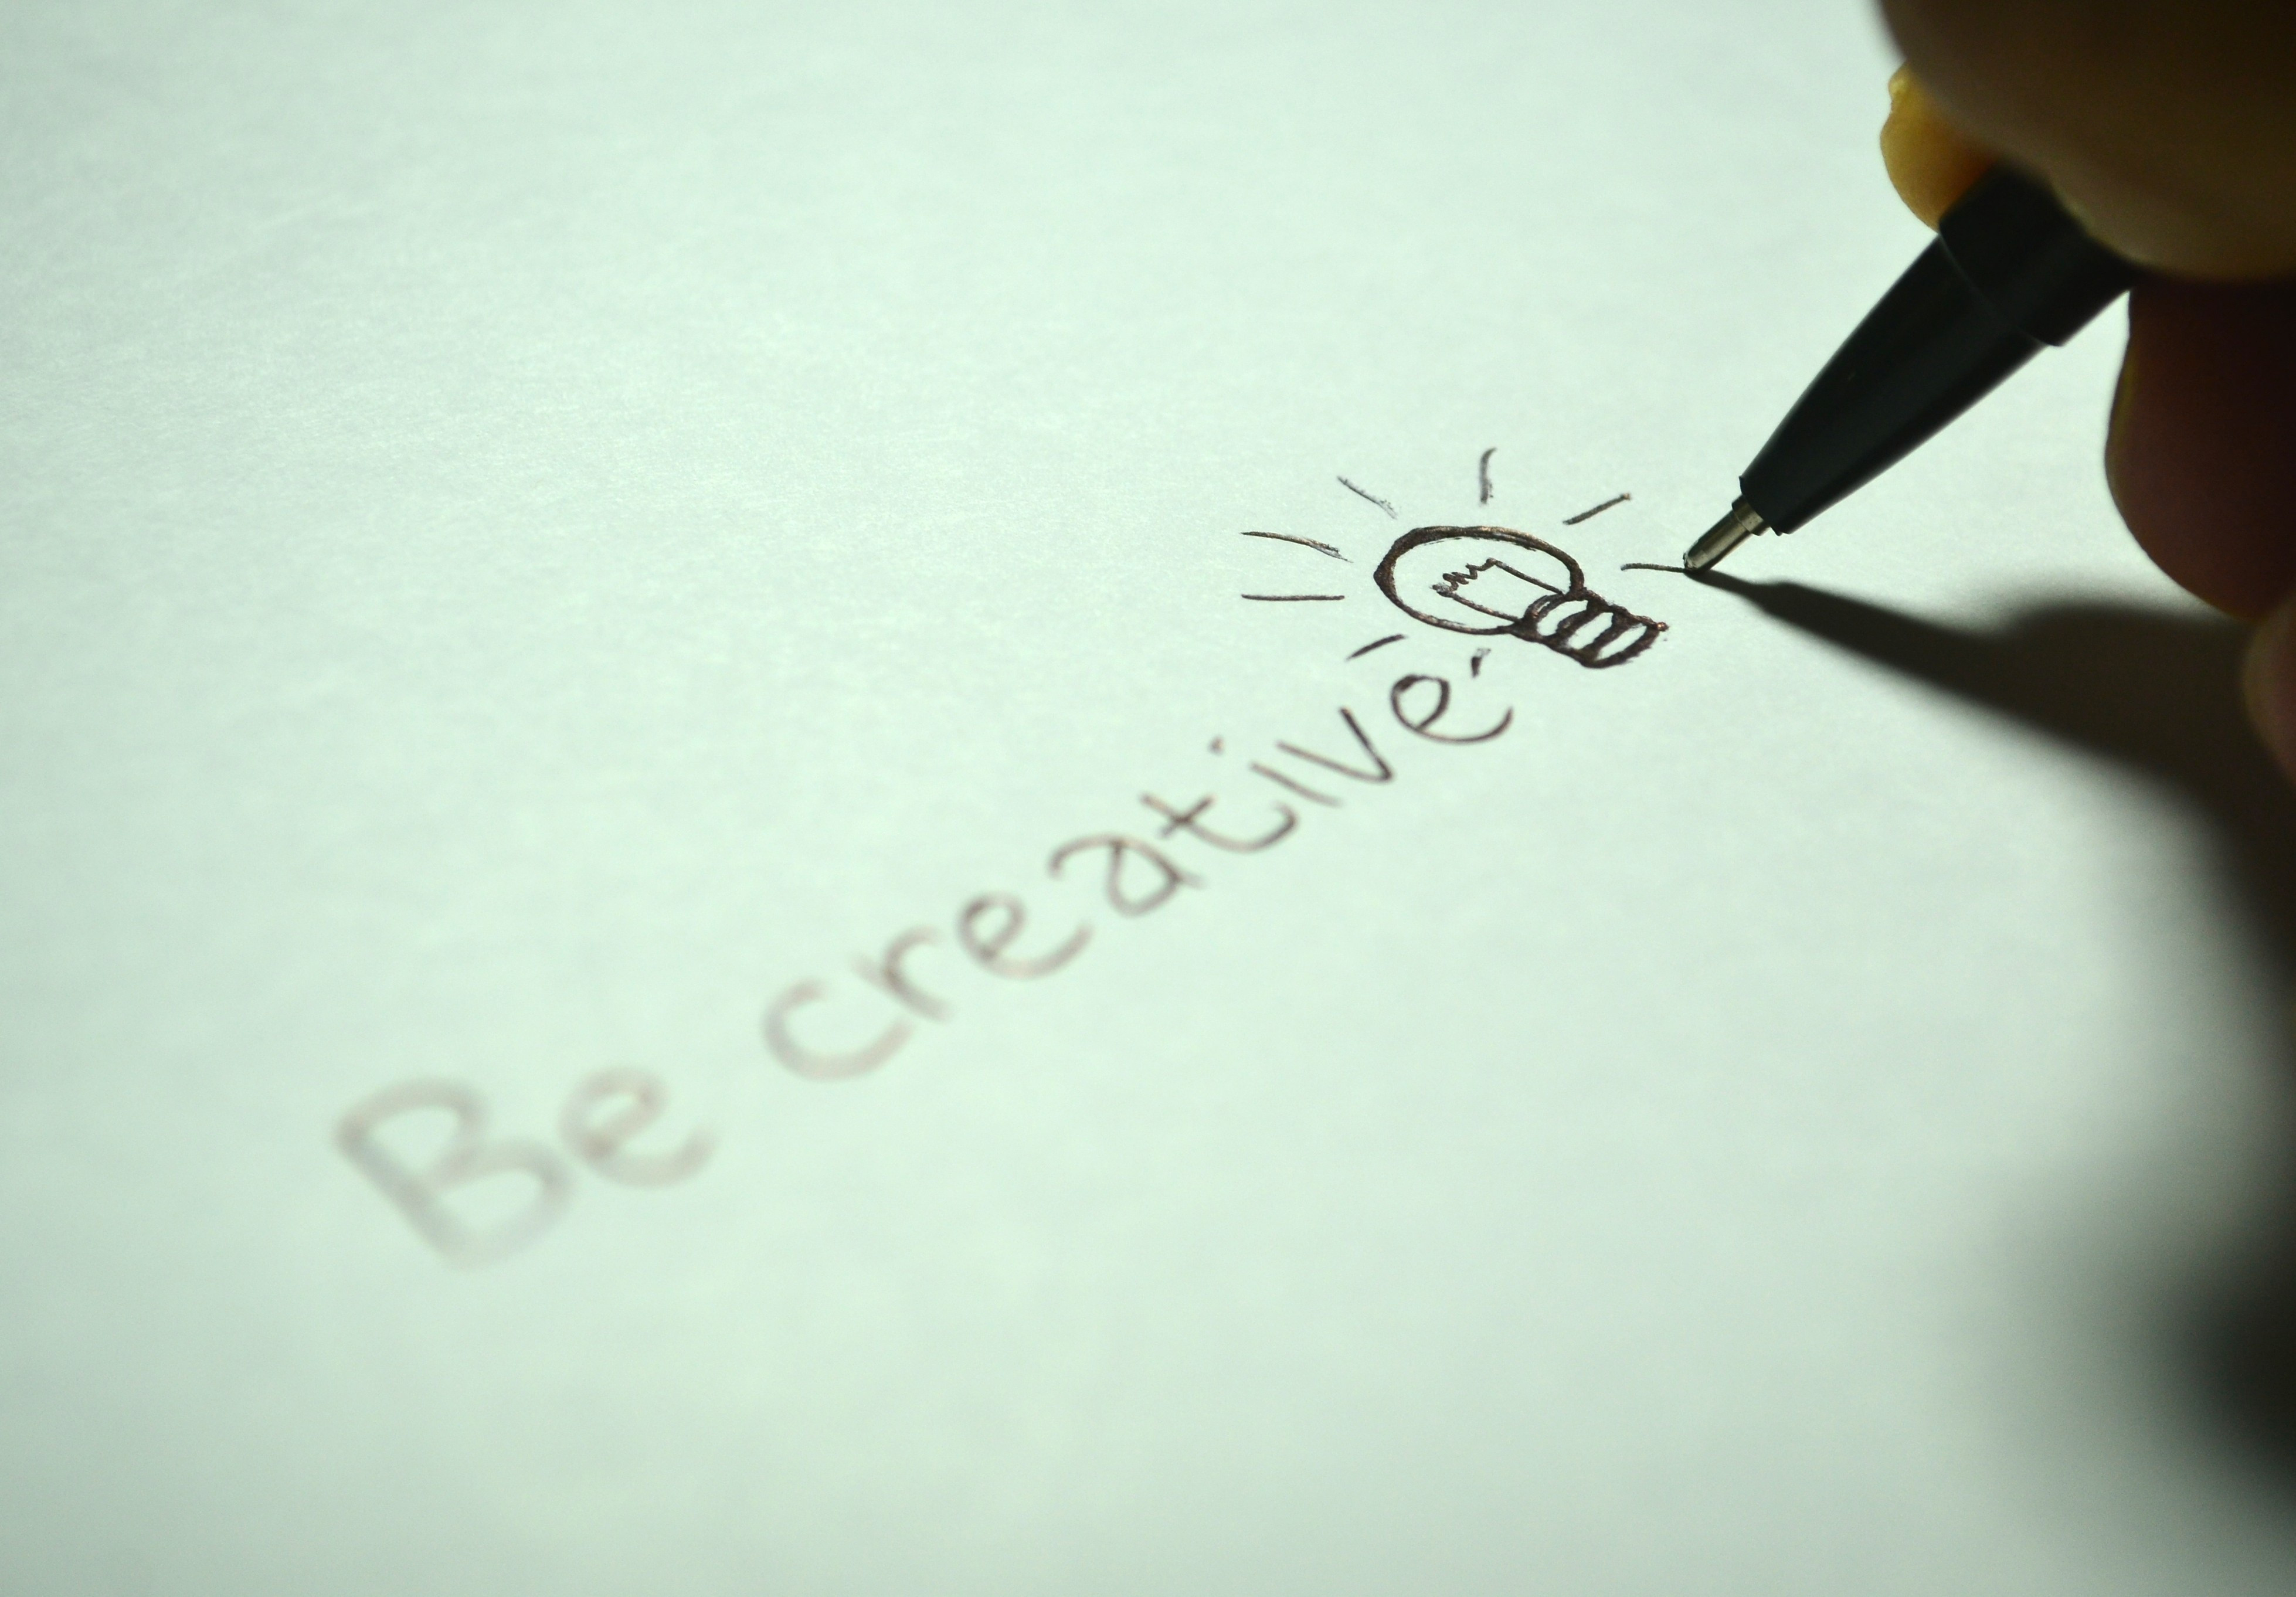 Growing up your great idea